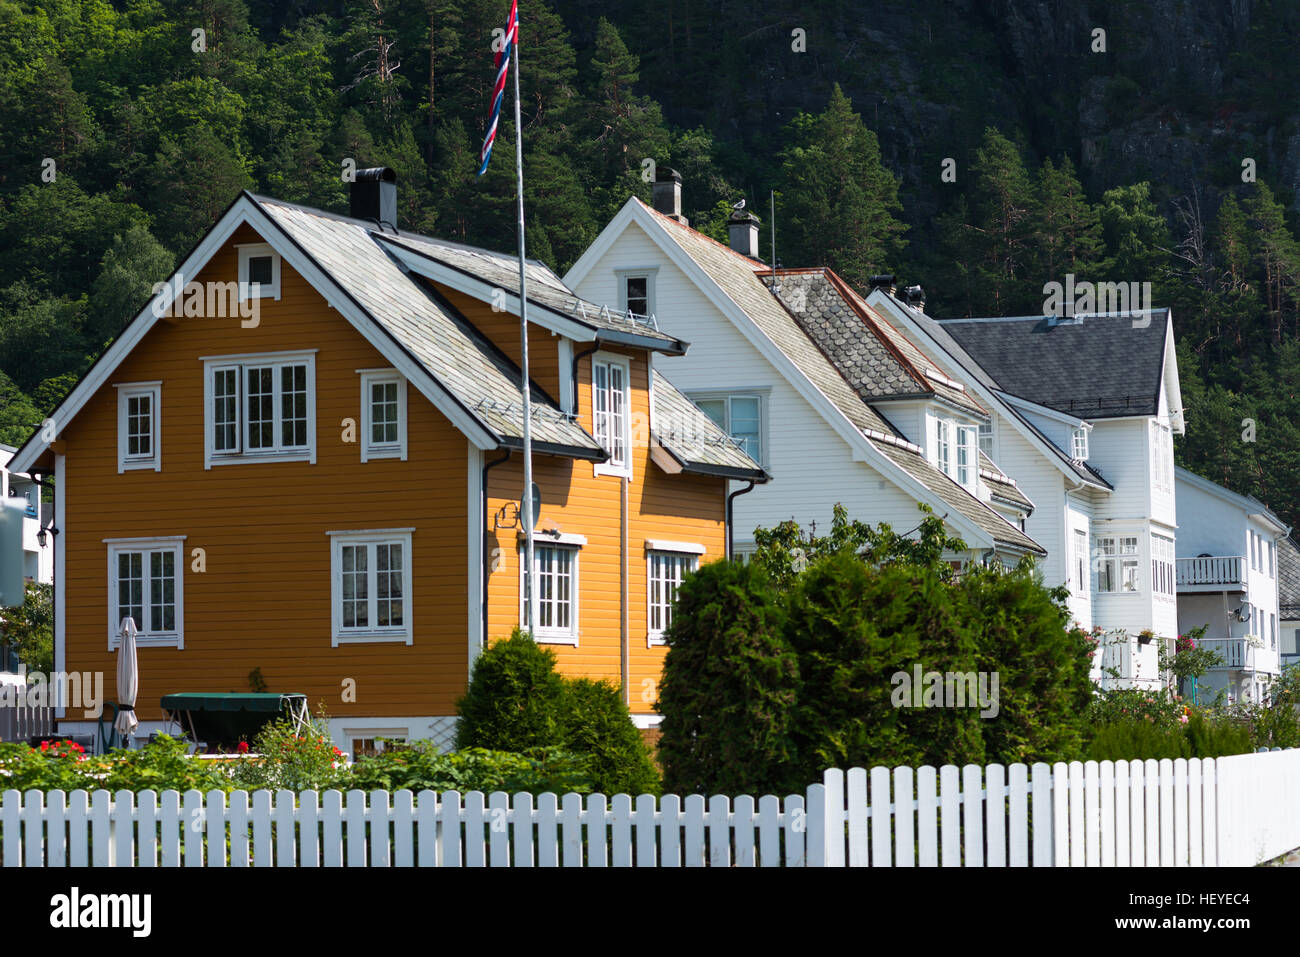 Traditional wooden houses in Olden, Norway. - Stock Image